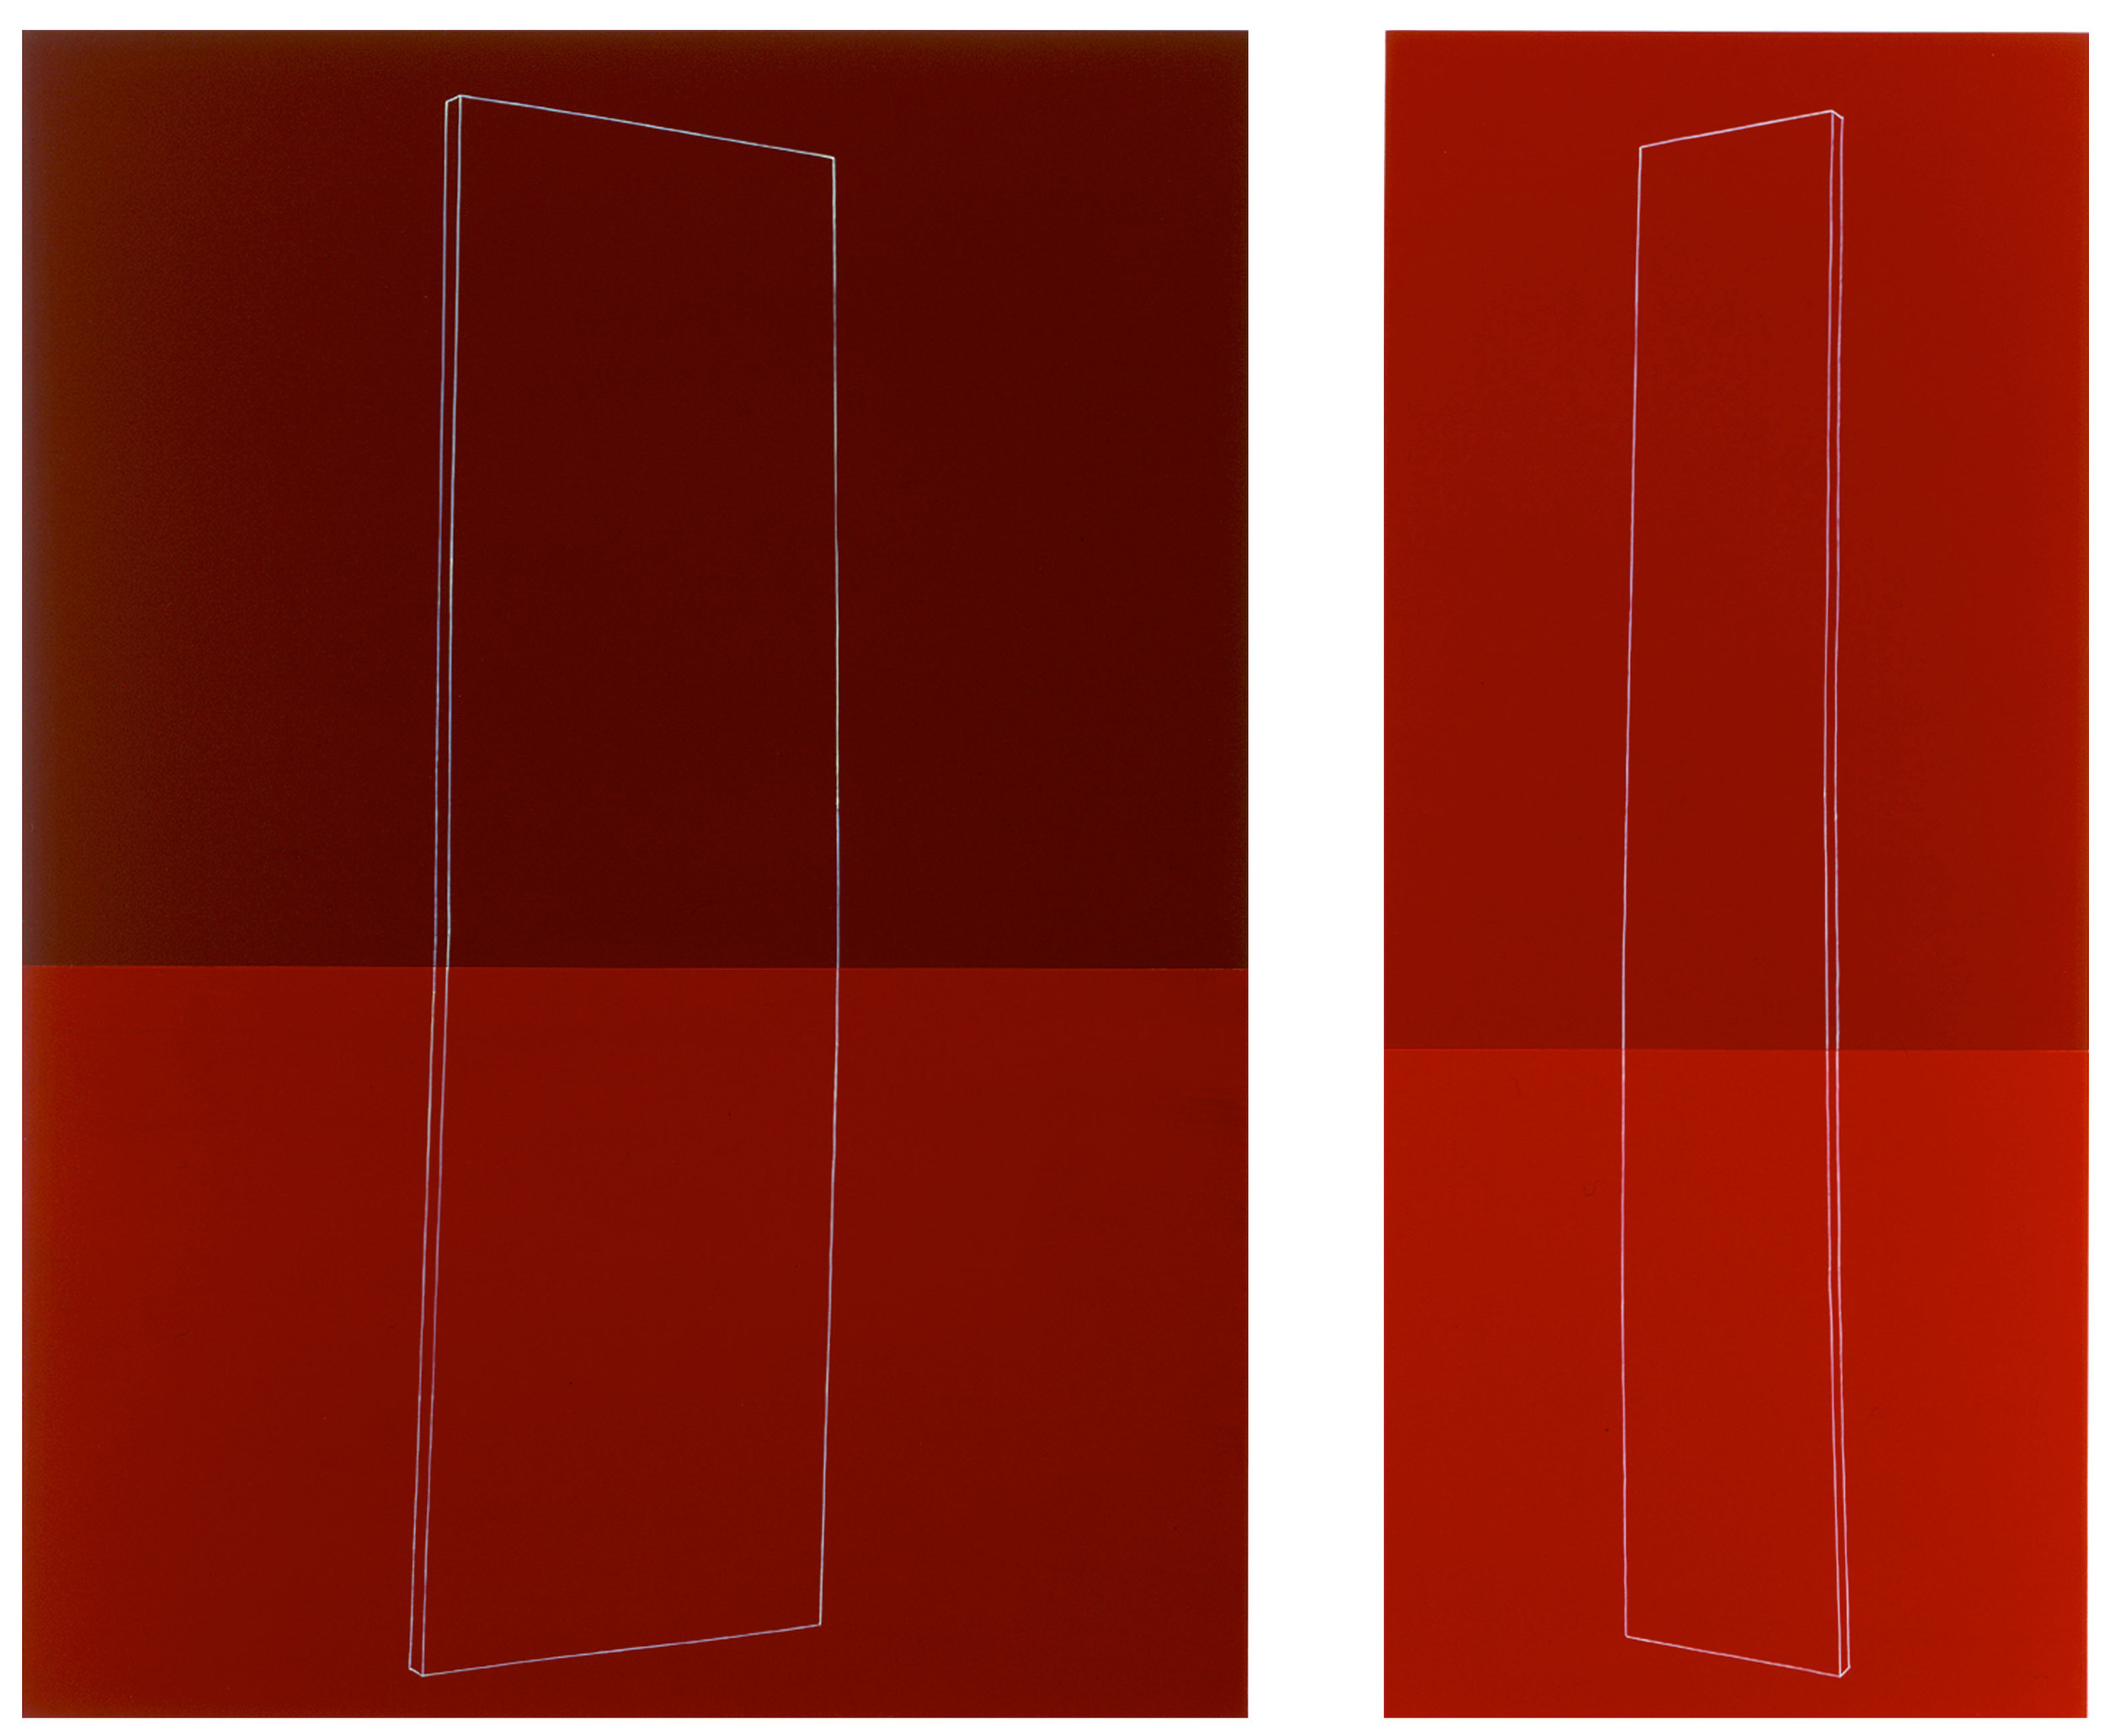 Towards each other Figure Wide and Thin Four reds